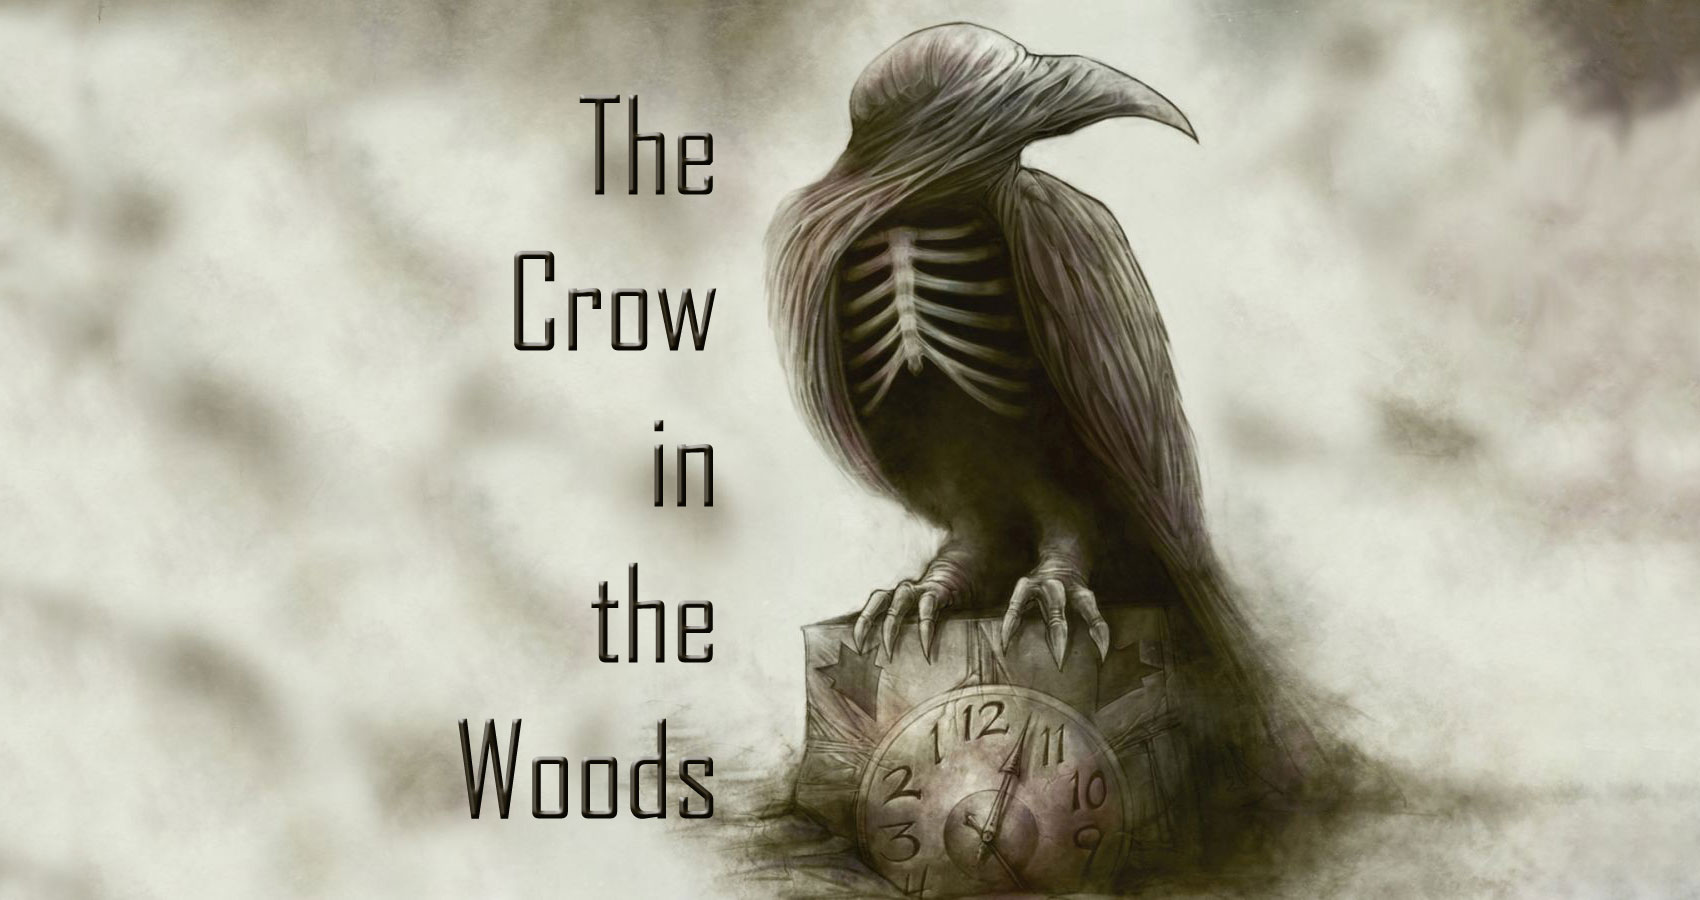 The Crow in the Woods by Jasmin Mödlhammer at Spillwords.com